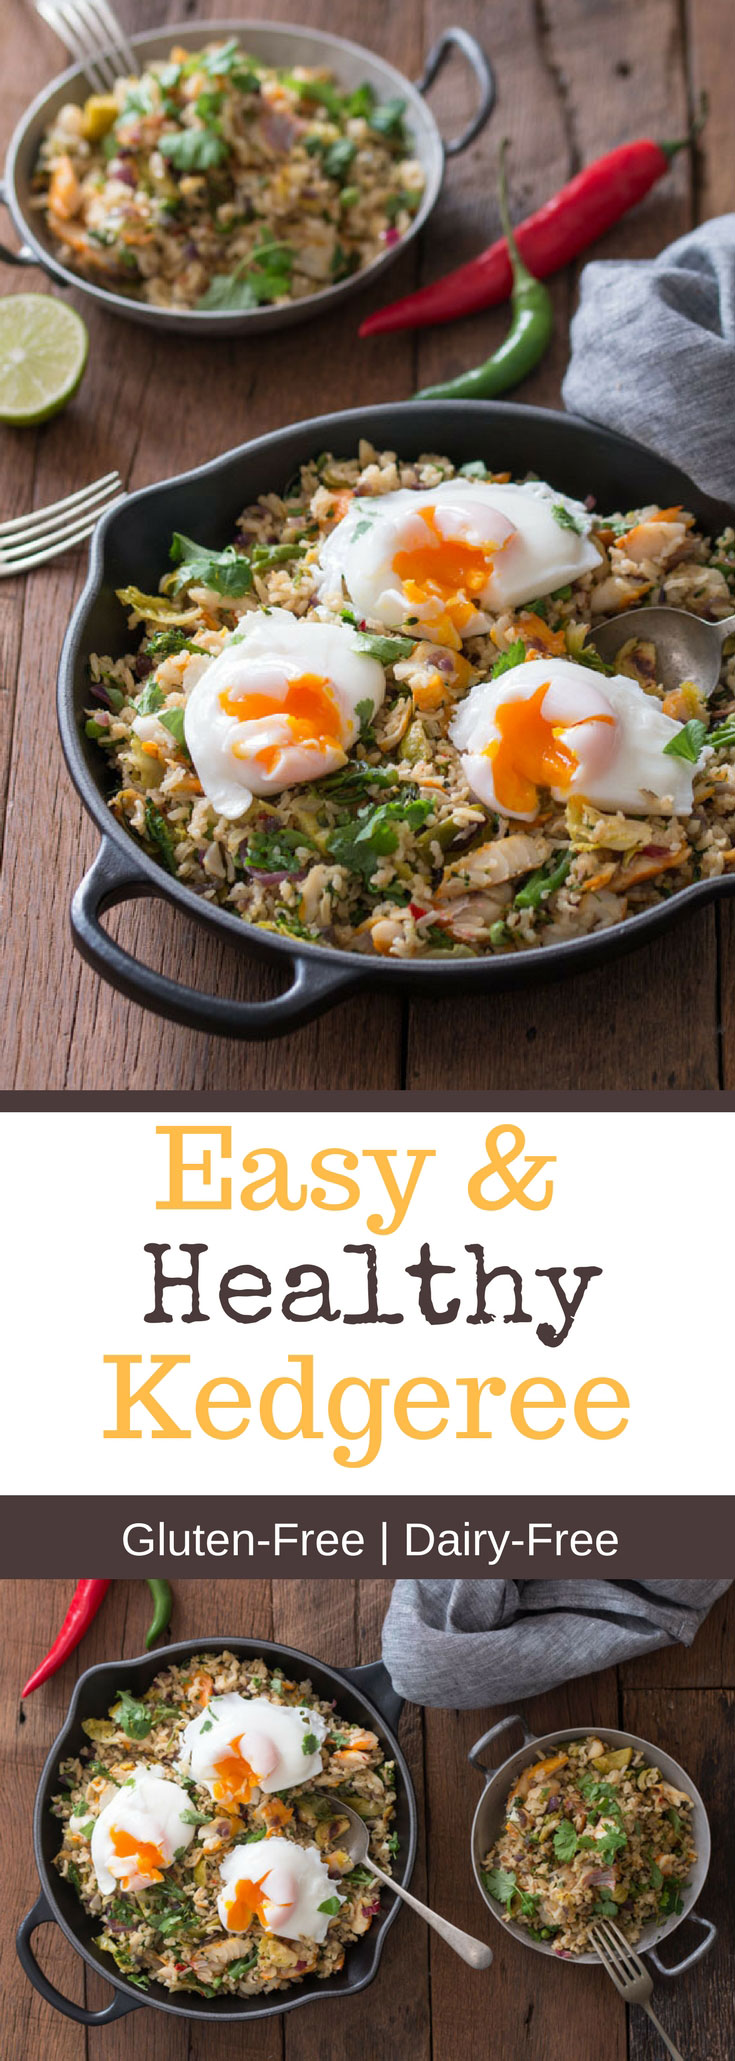 Easy & Healthy Kedgeree Recipe